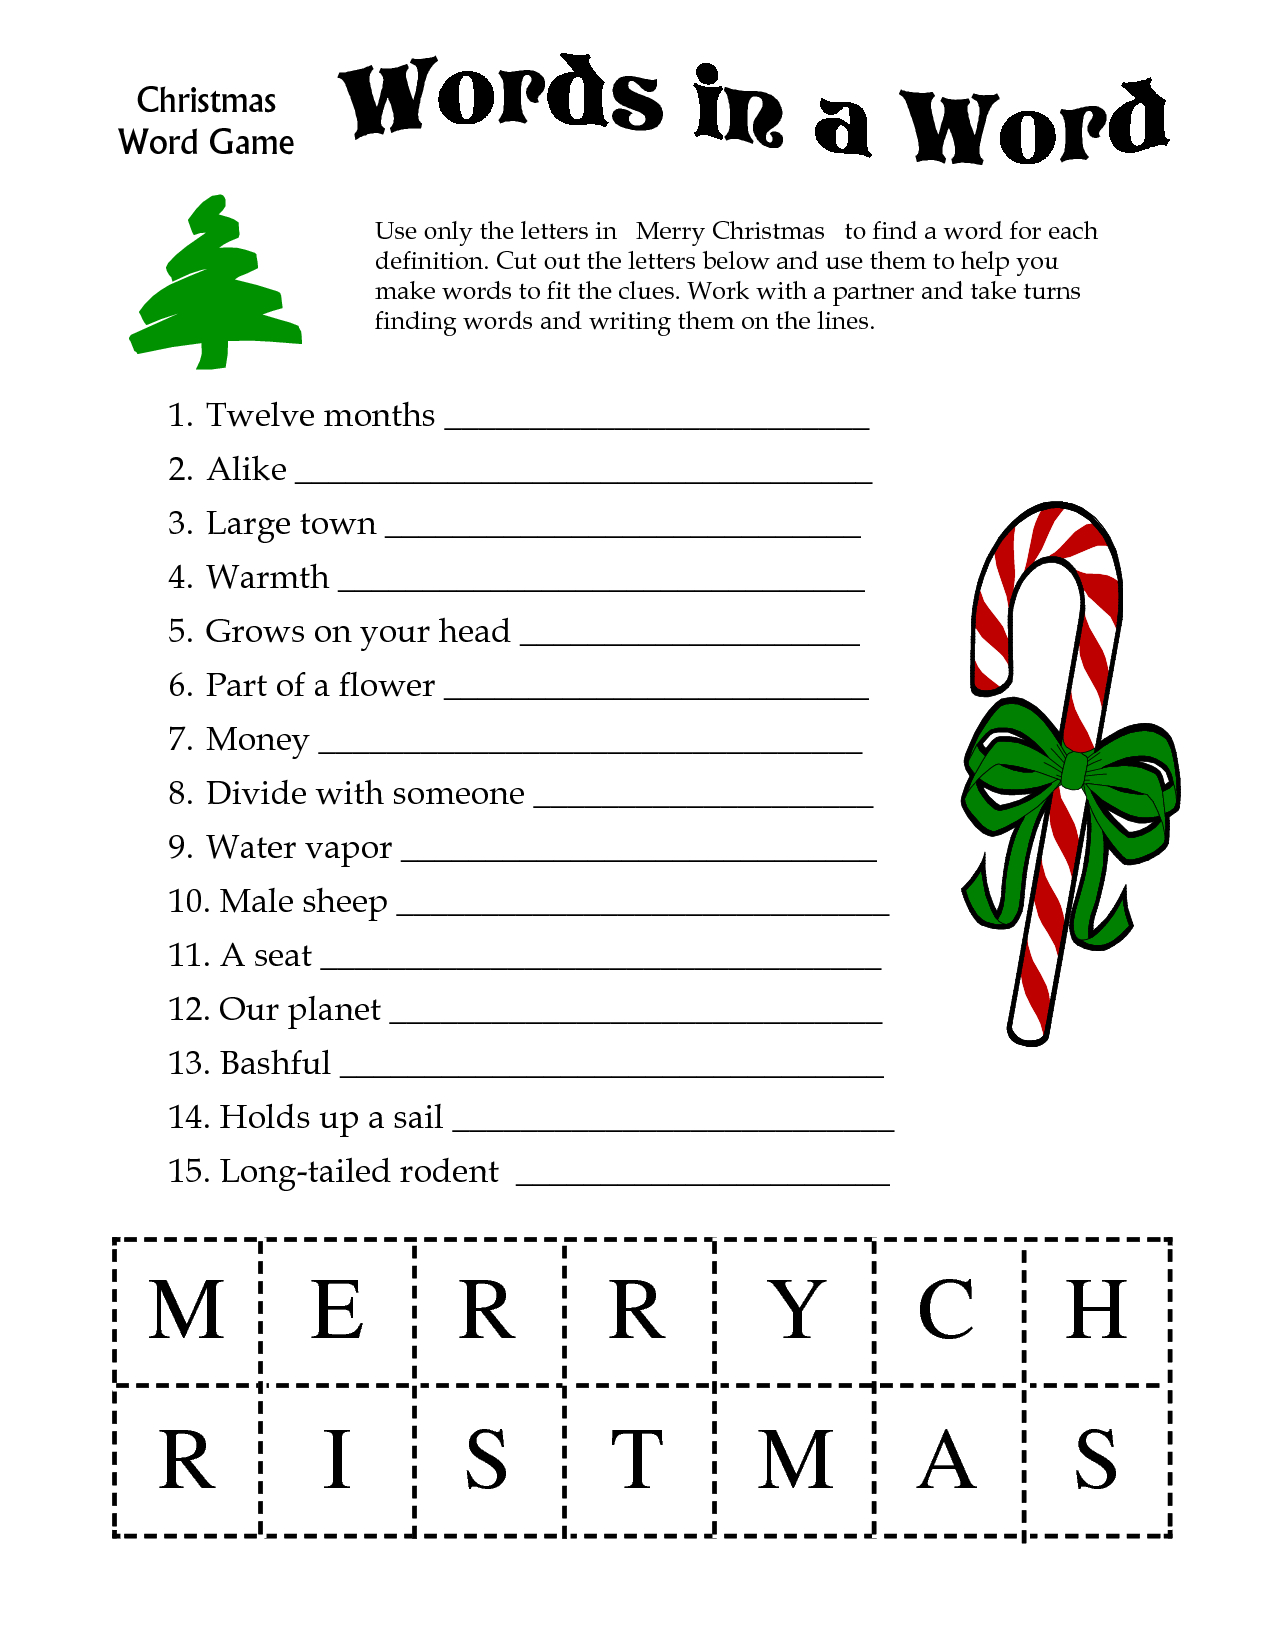 Free Printable Christmas Word Games Puzzles – Festival Collections - Christmas Printable Puzzles Games